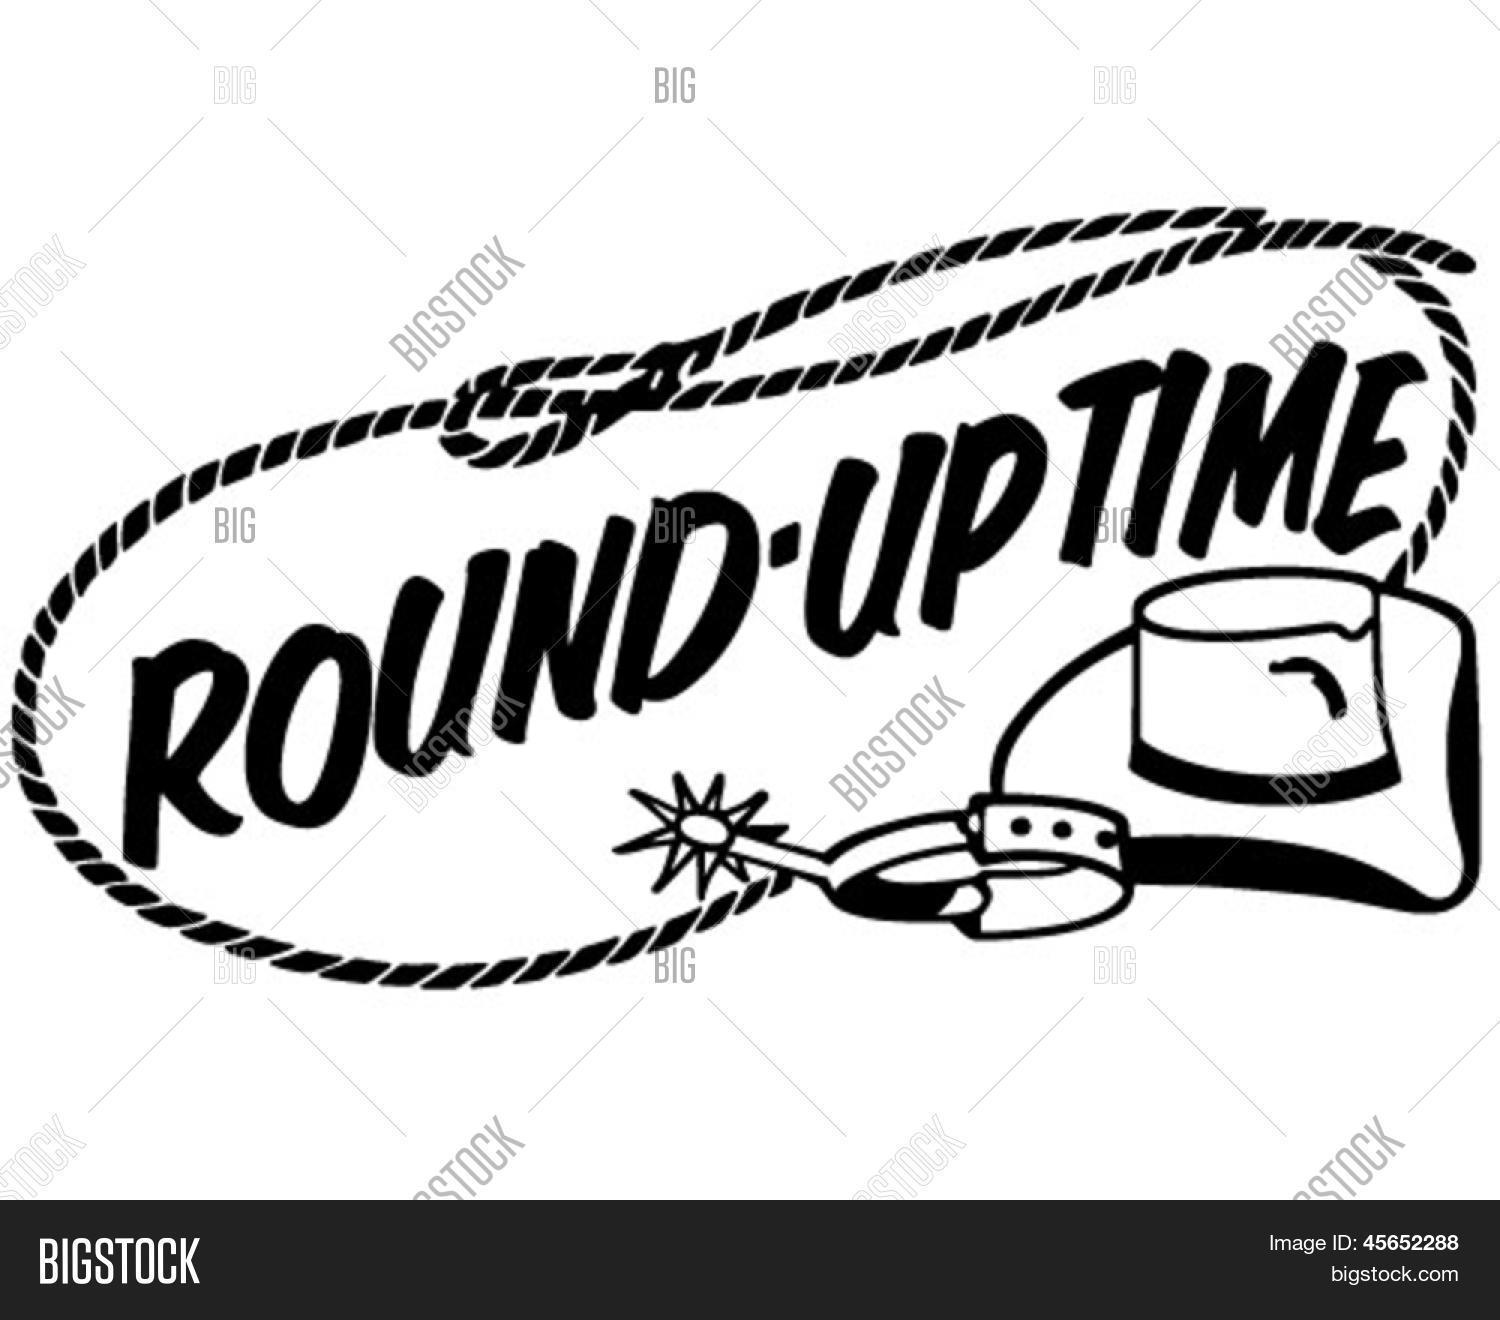 Round Up Time Banner